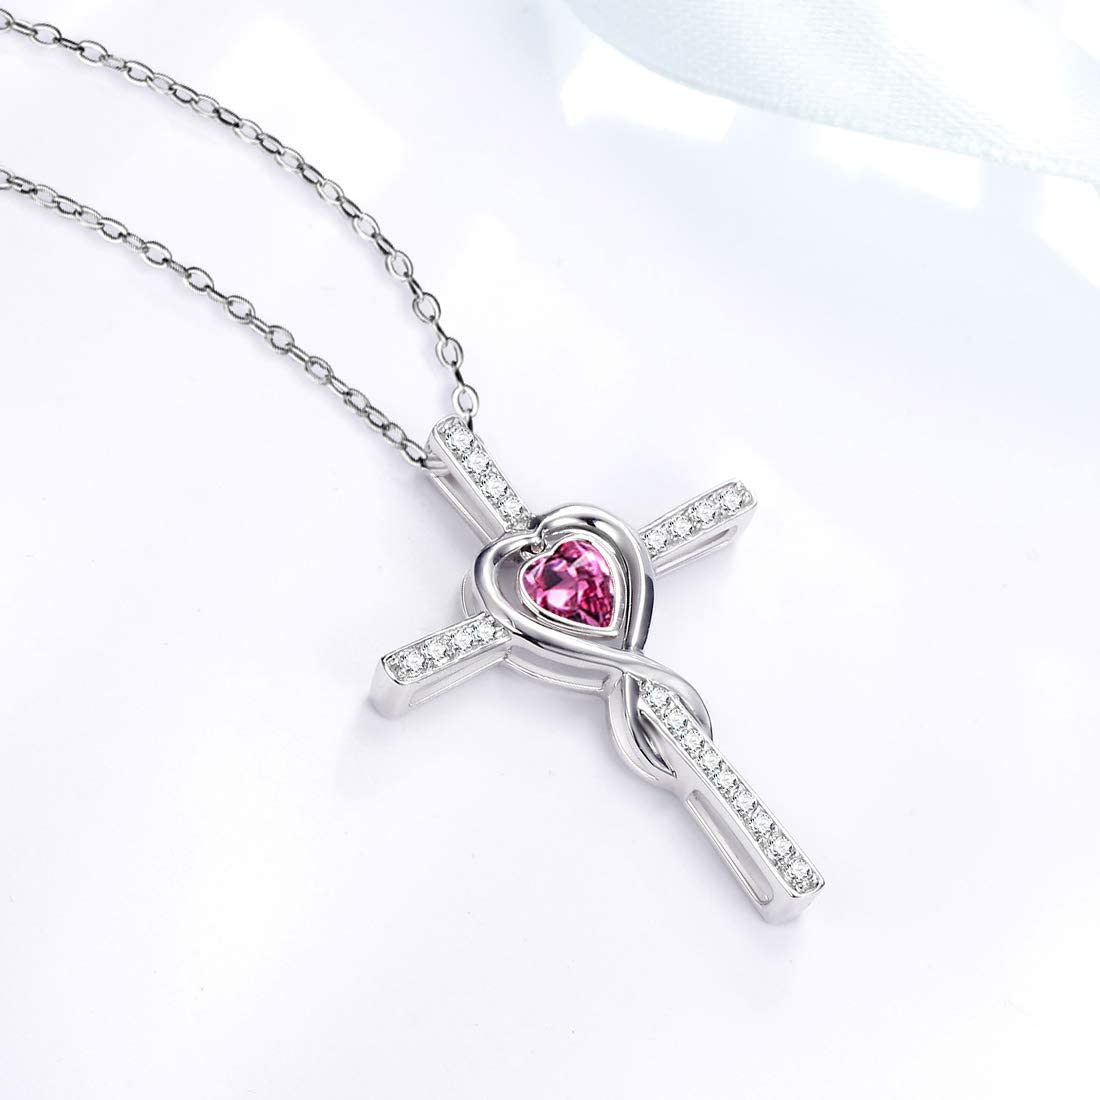 Dorella Sterling Silver Love Heart Necklace for Wife Valentines Day Birthday Gifts Pearl Peridot Blue Sapphire Pink Tourmaline Citrine Garnet Necklace Love Heart Infinity Jewelry